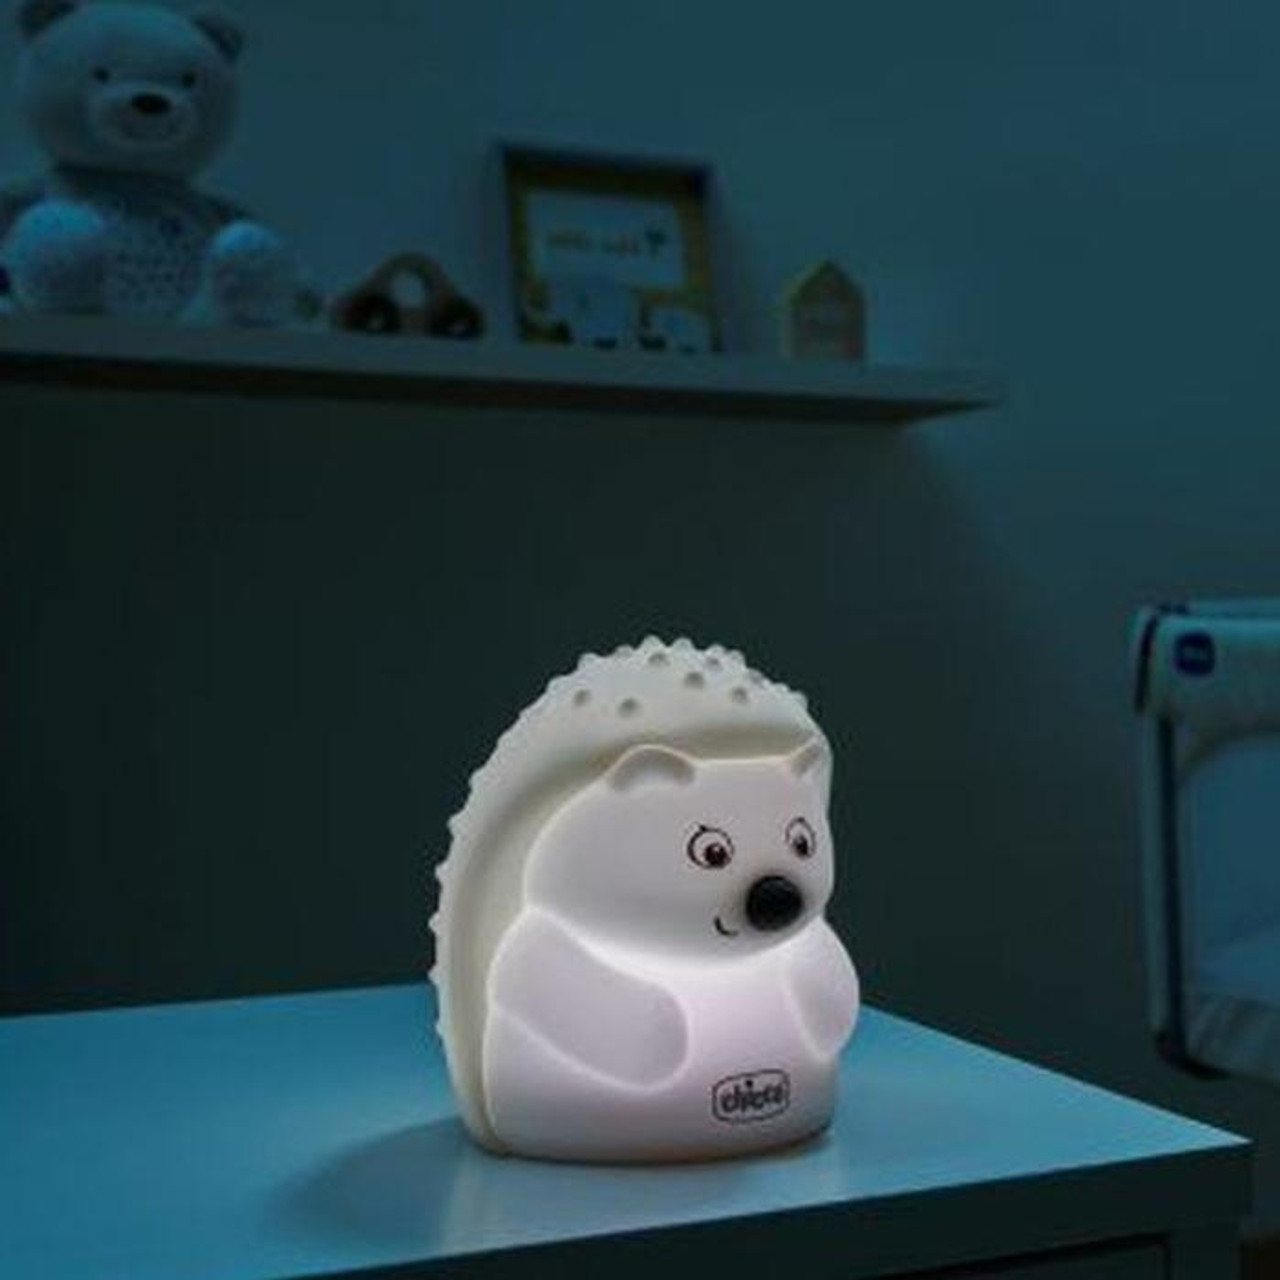 Chicco Sweet Lights Rechargeable Lamp at Baby Barn Discounts Rechargeable night light by Chicco is a lamp with the likeness of a cute characters.